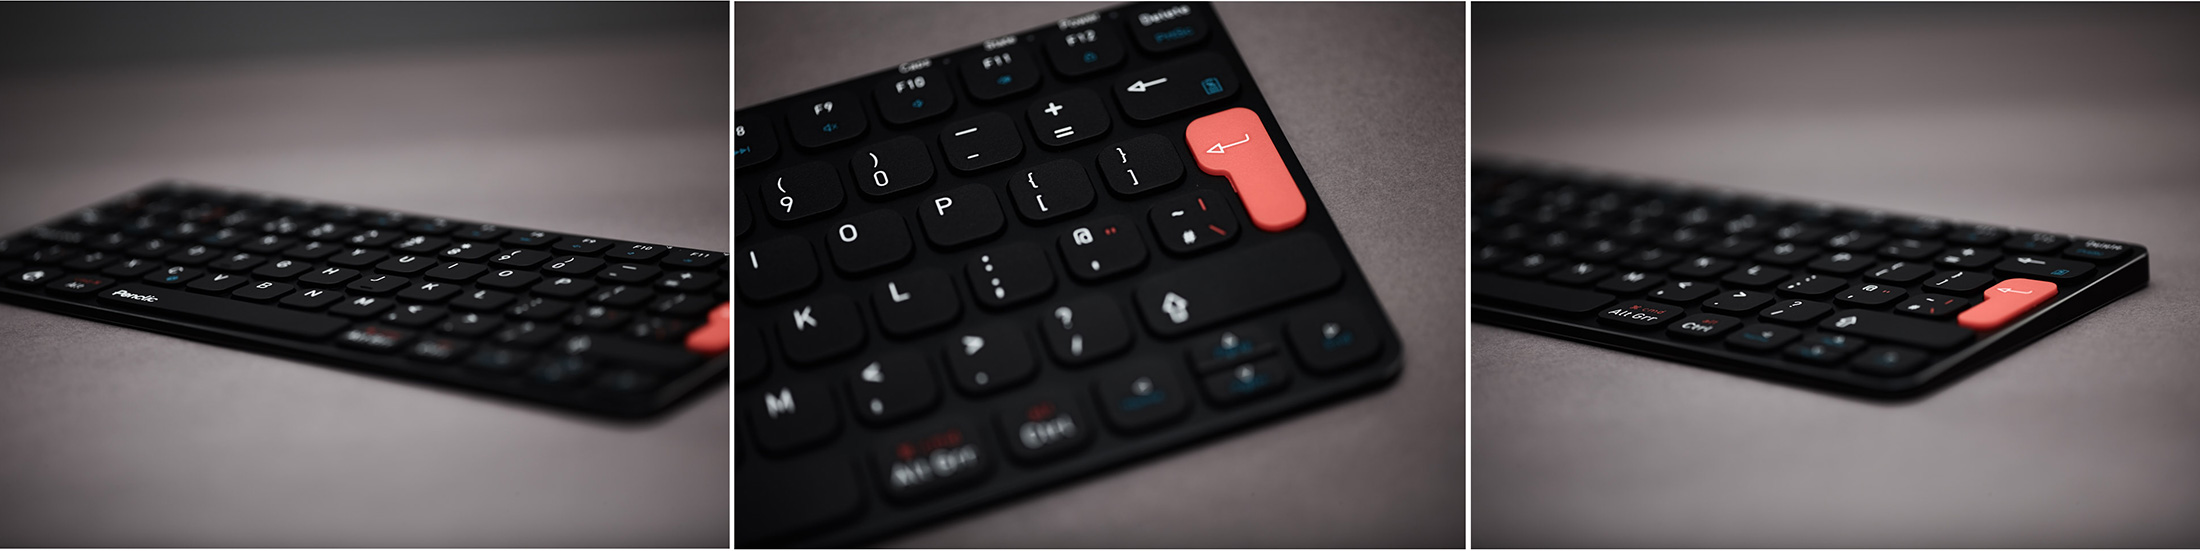 kb3-3-views